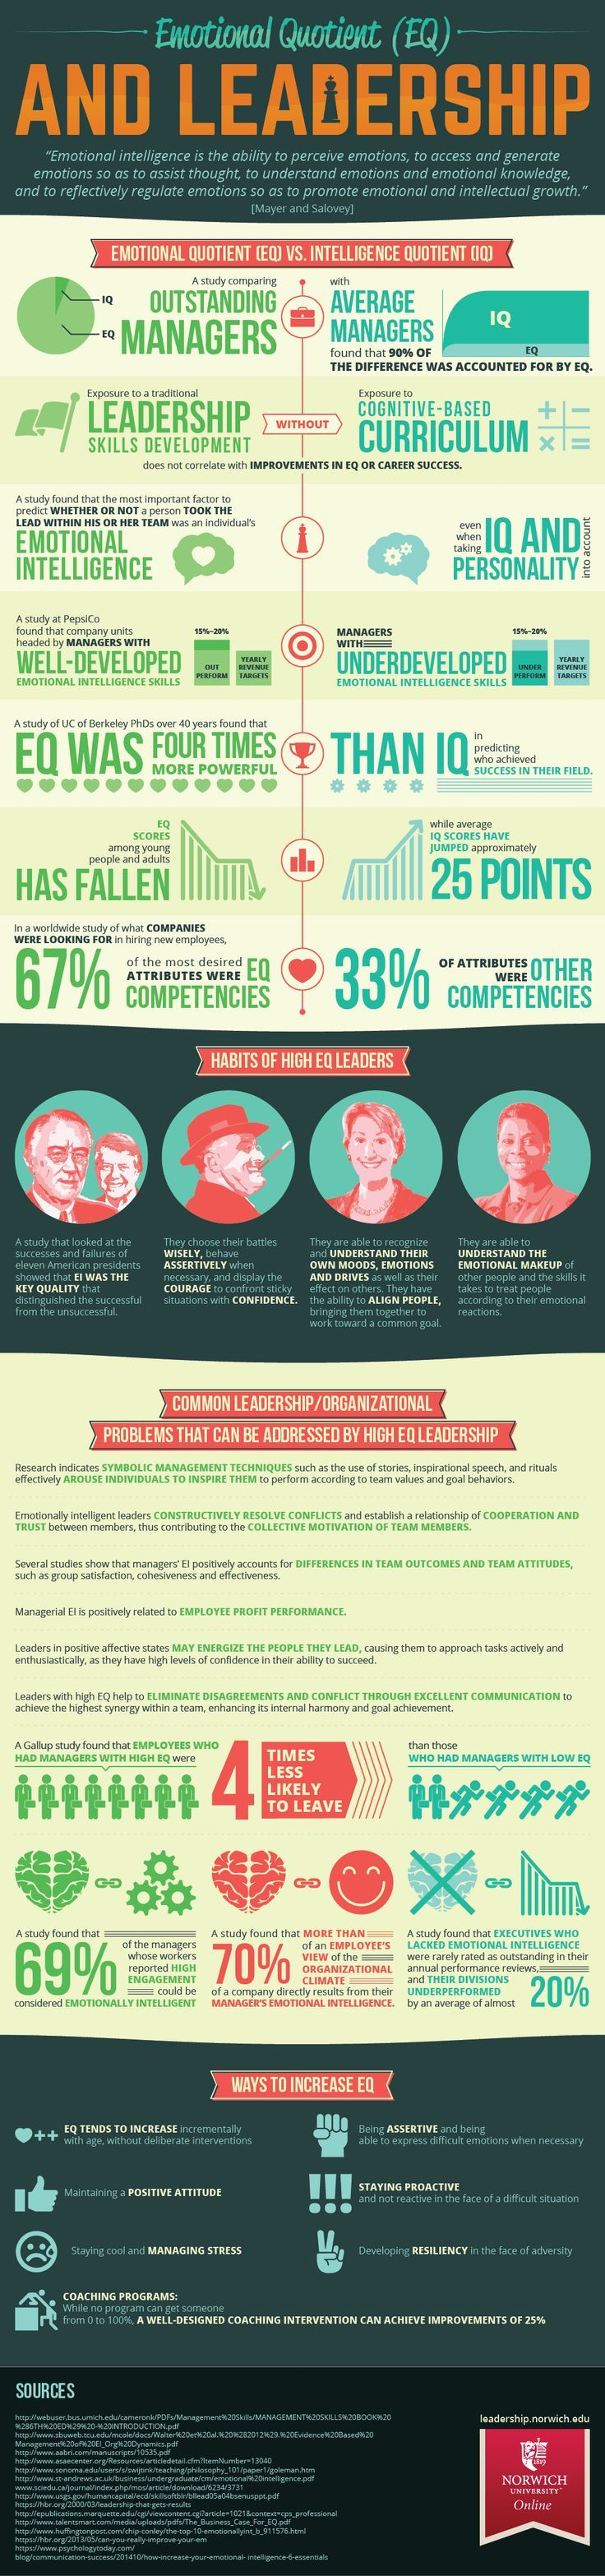 Emotional Intelligence and Leadership Infographic. #goodmanager